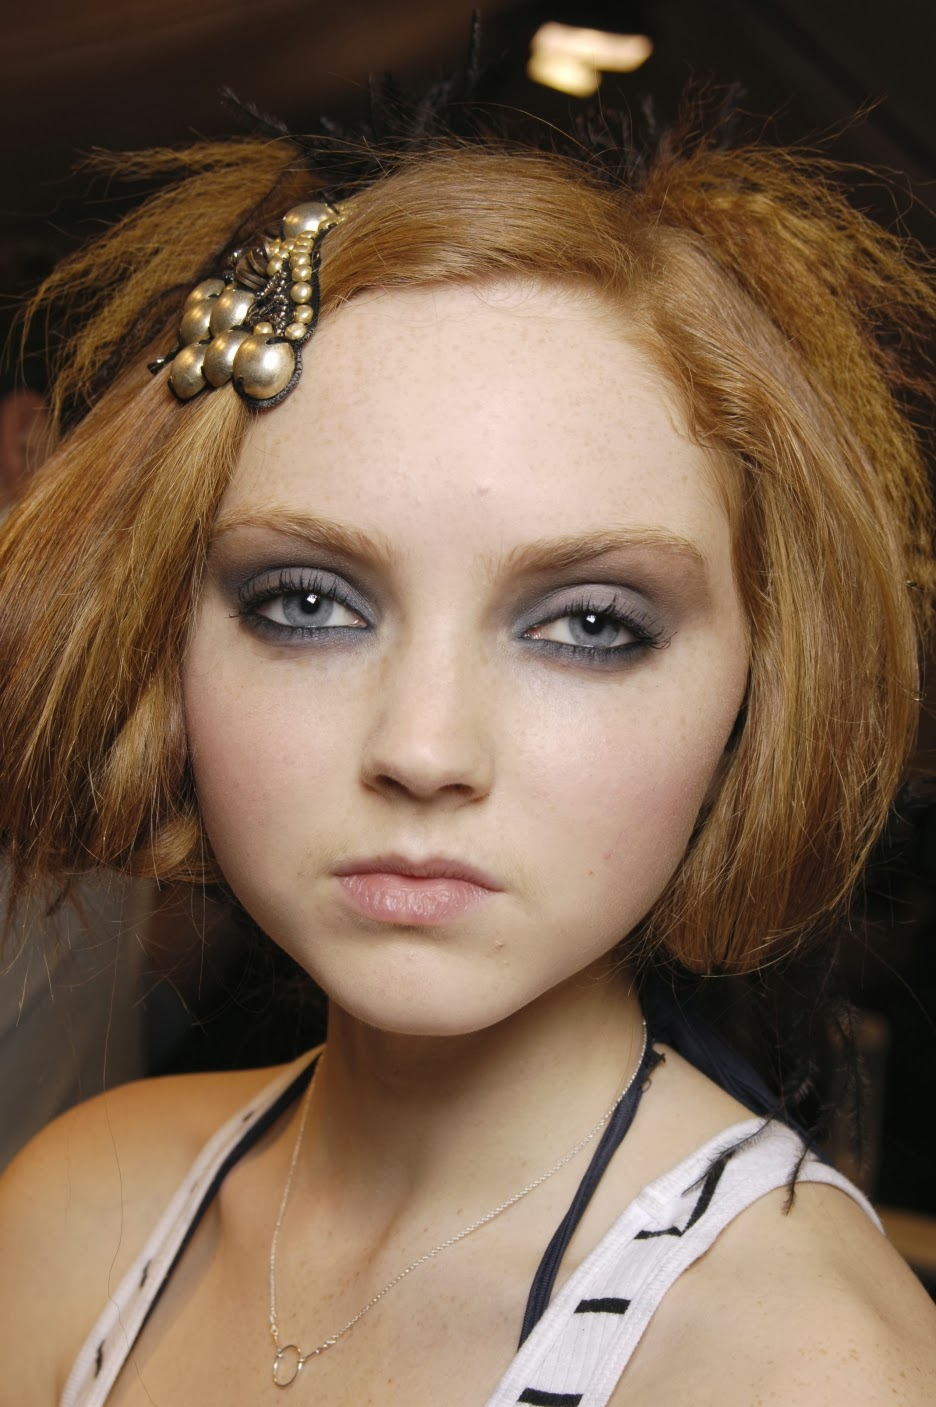 Hd Wallpapers Blog: Lily Cole Pics